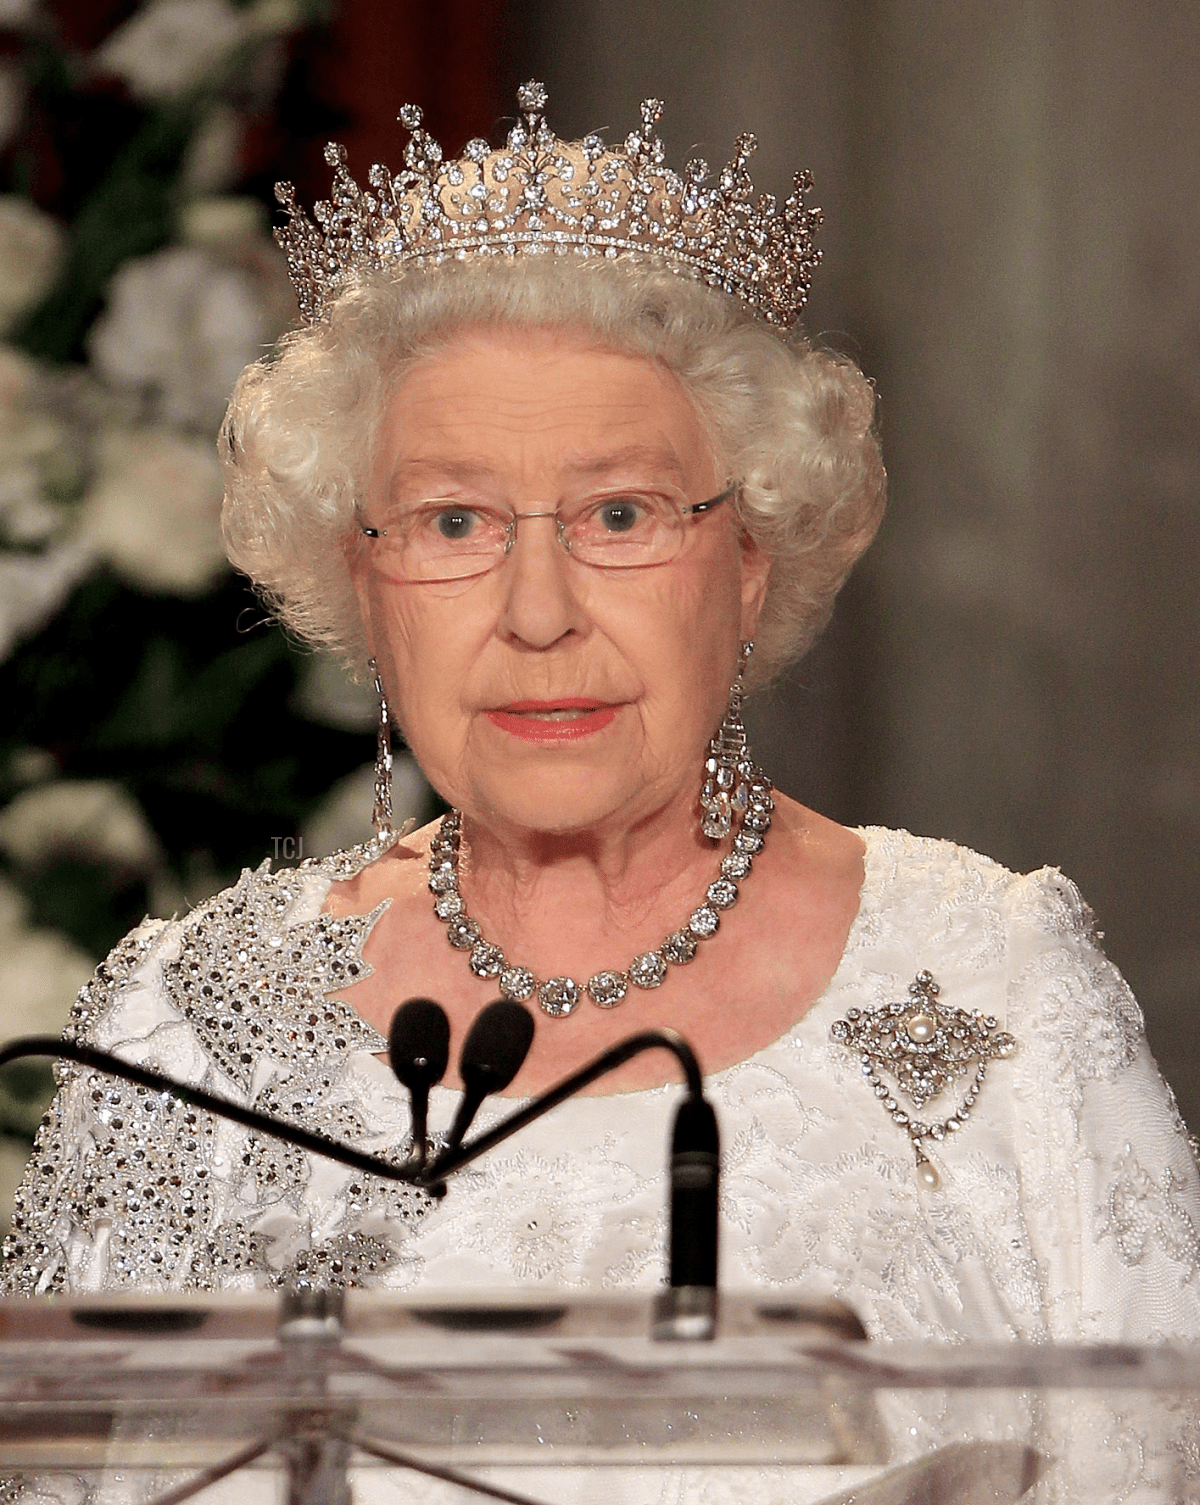 Queen Elizabeth II gives a speech during a dinner at the Royal York Hotel on July 5, 2010 in Toronto